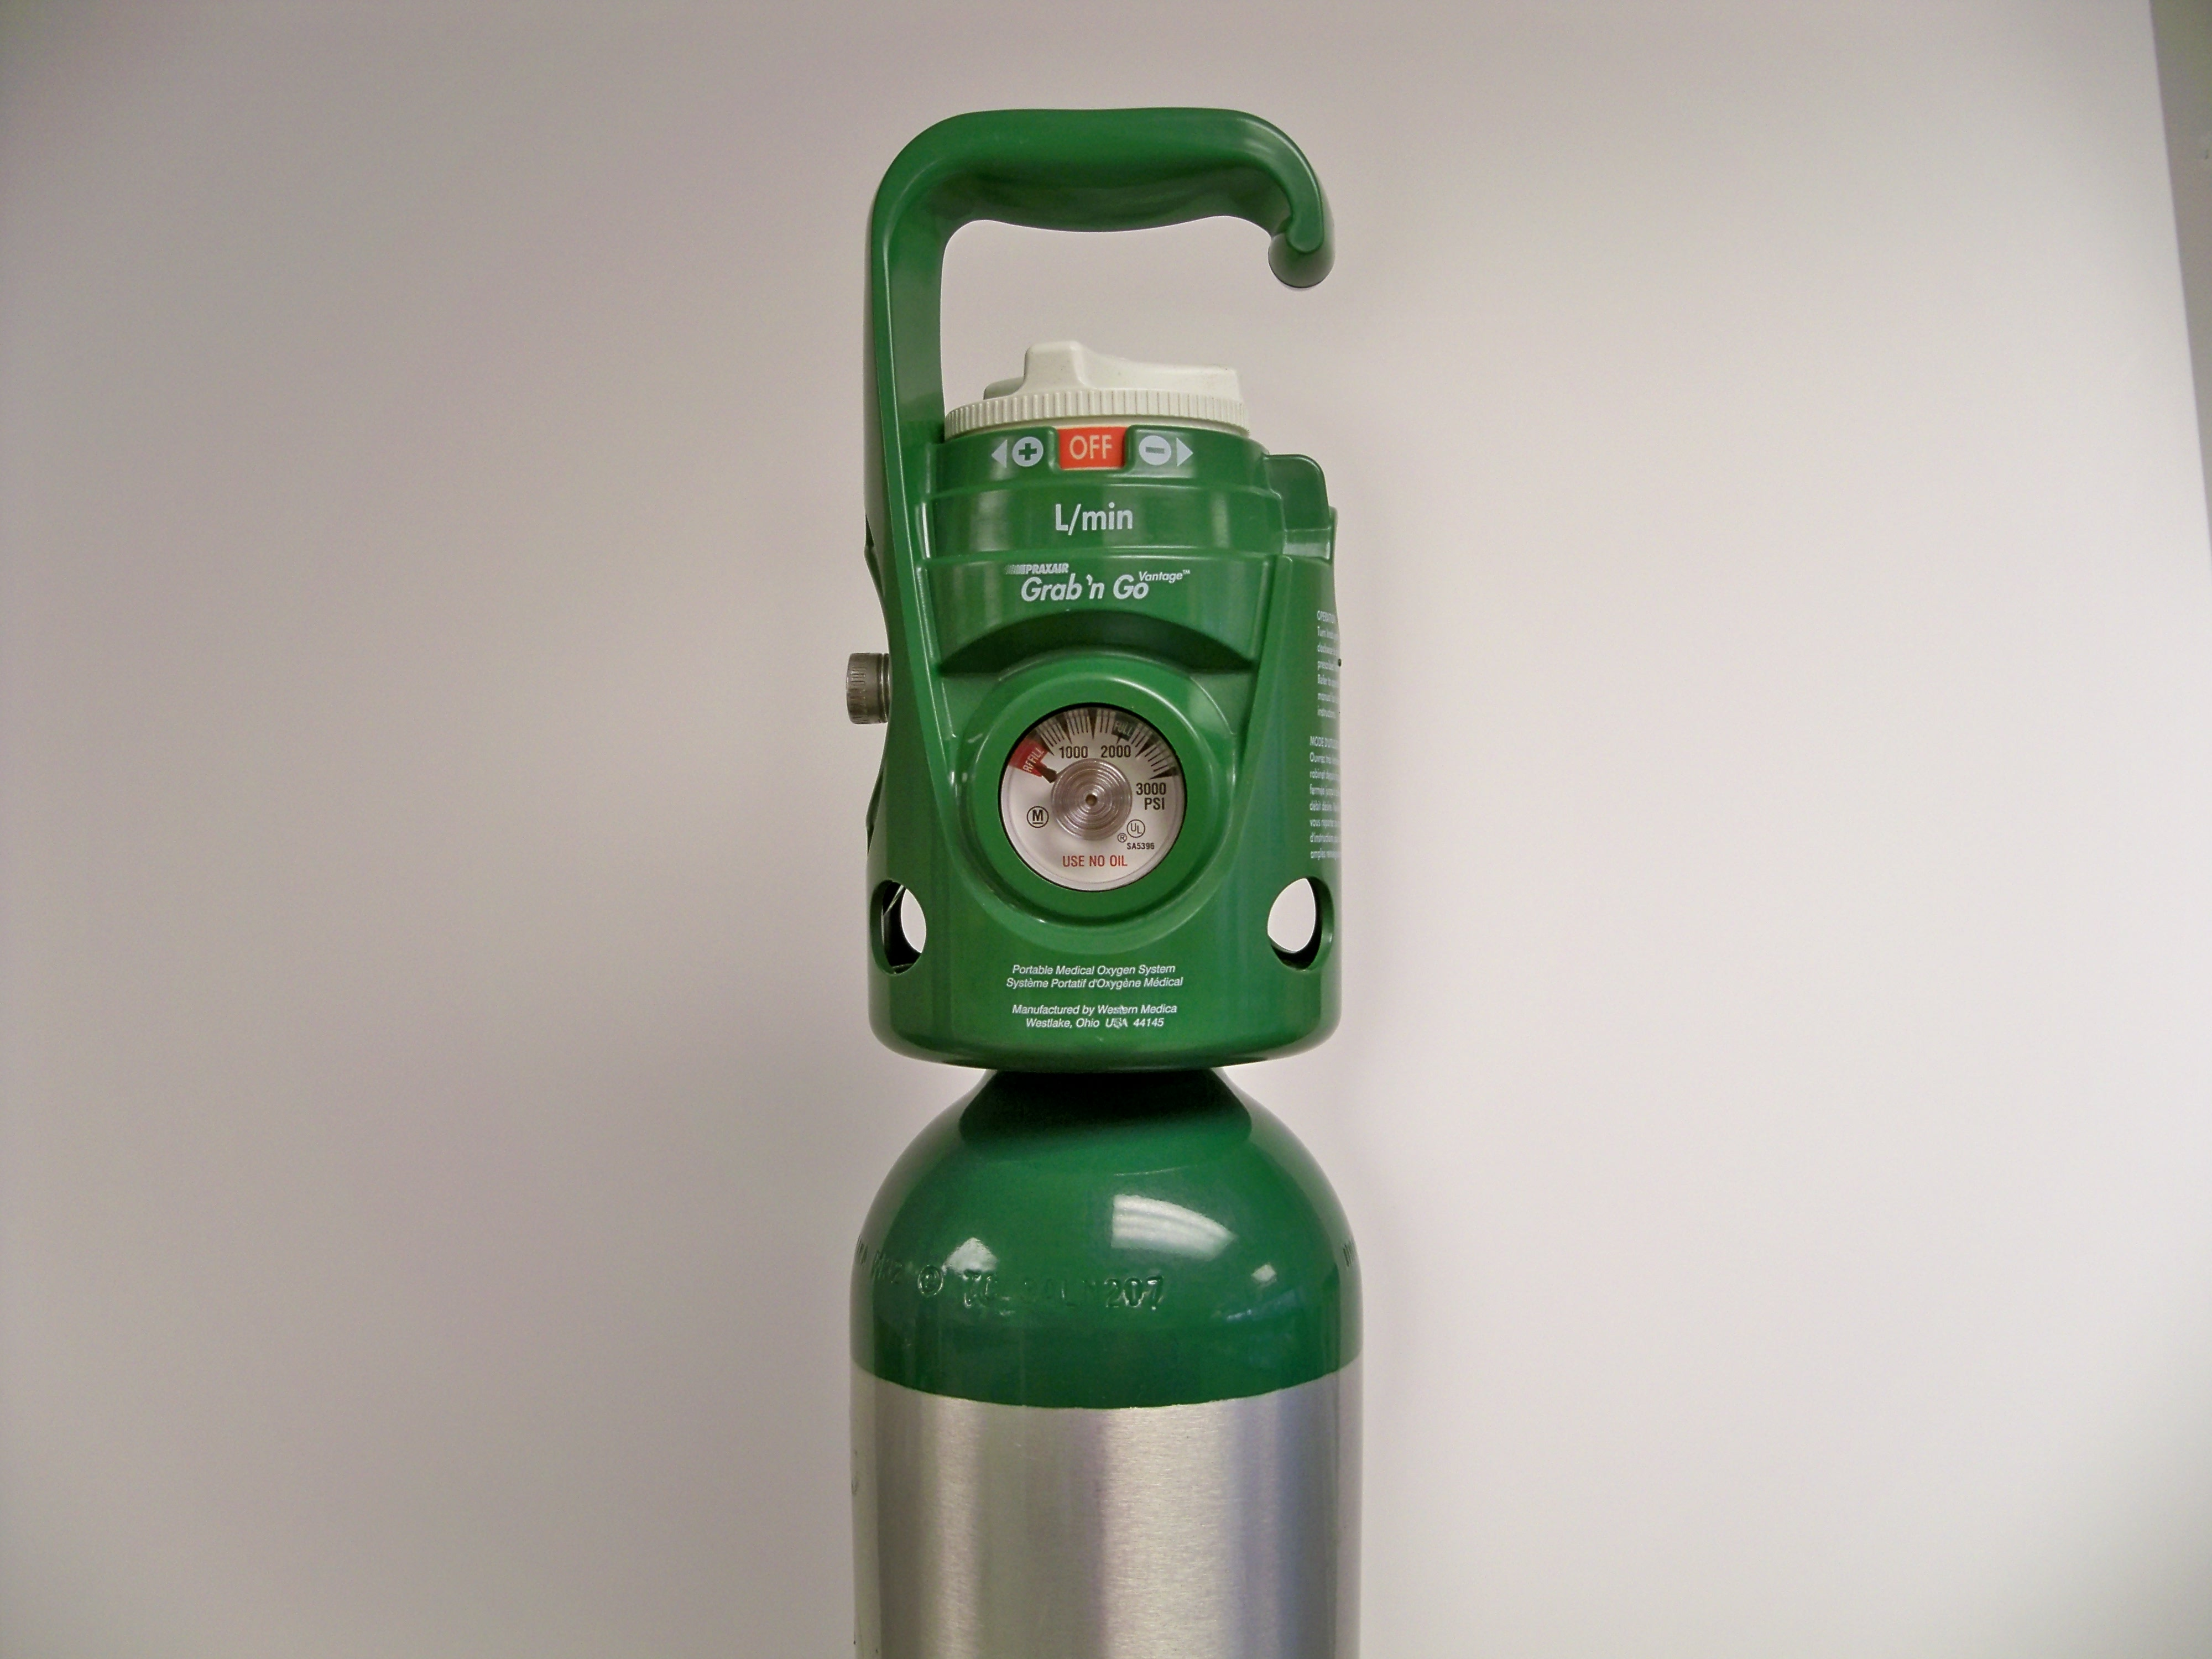 Green oxygen tank used for oxygen therapy